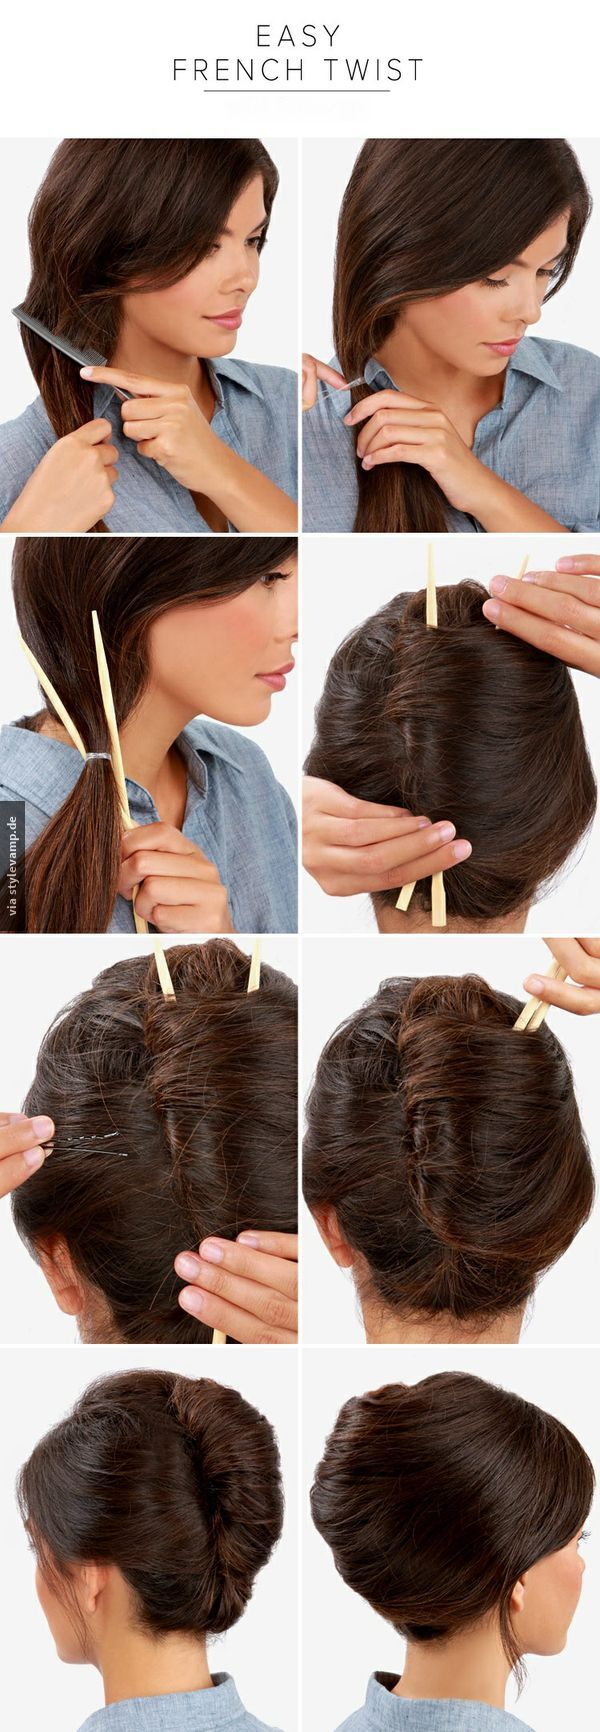 Easy French Twist <3